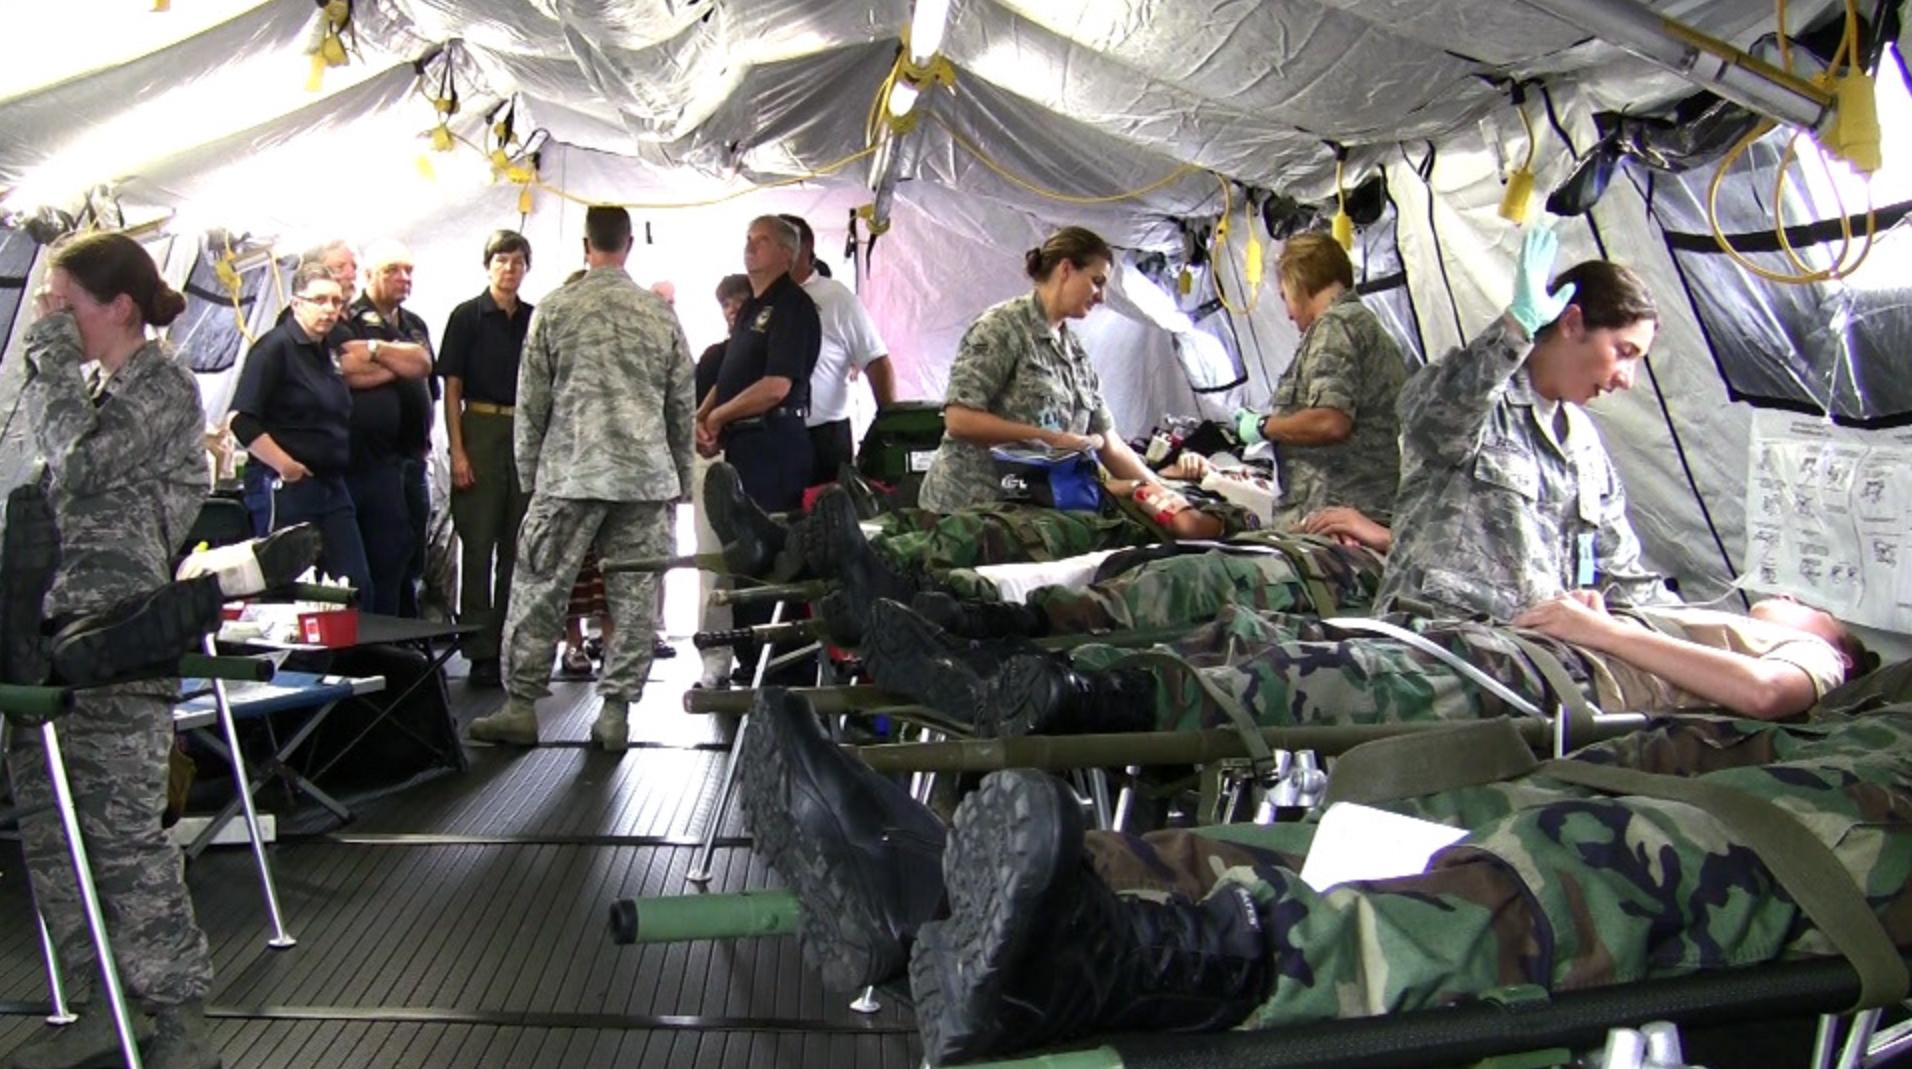 109th AW participates in National Disaster Medical System Exercise